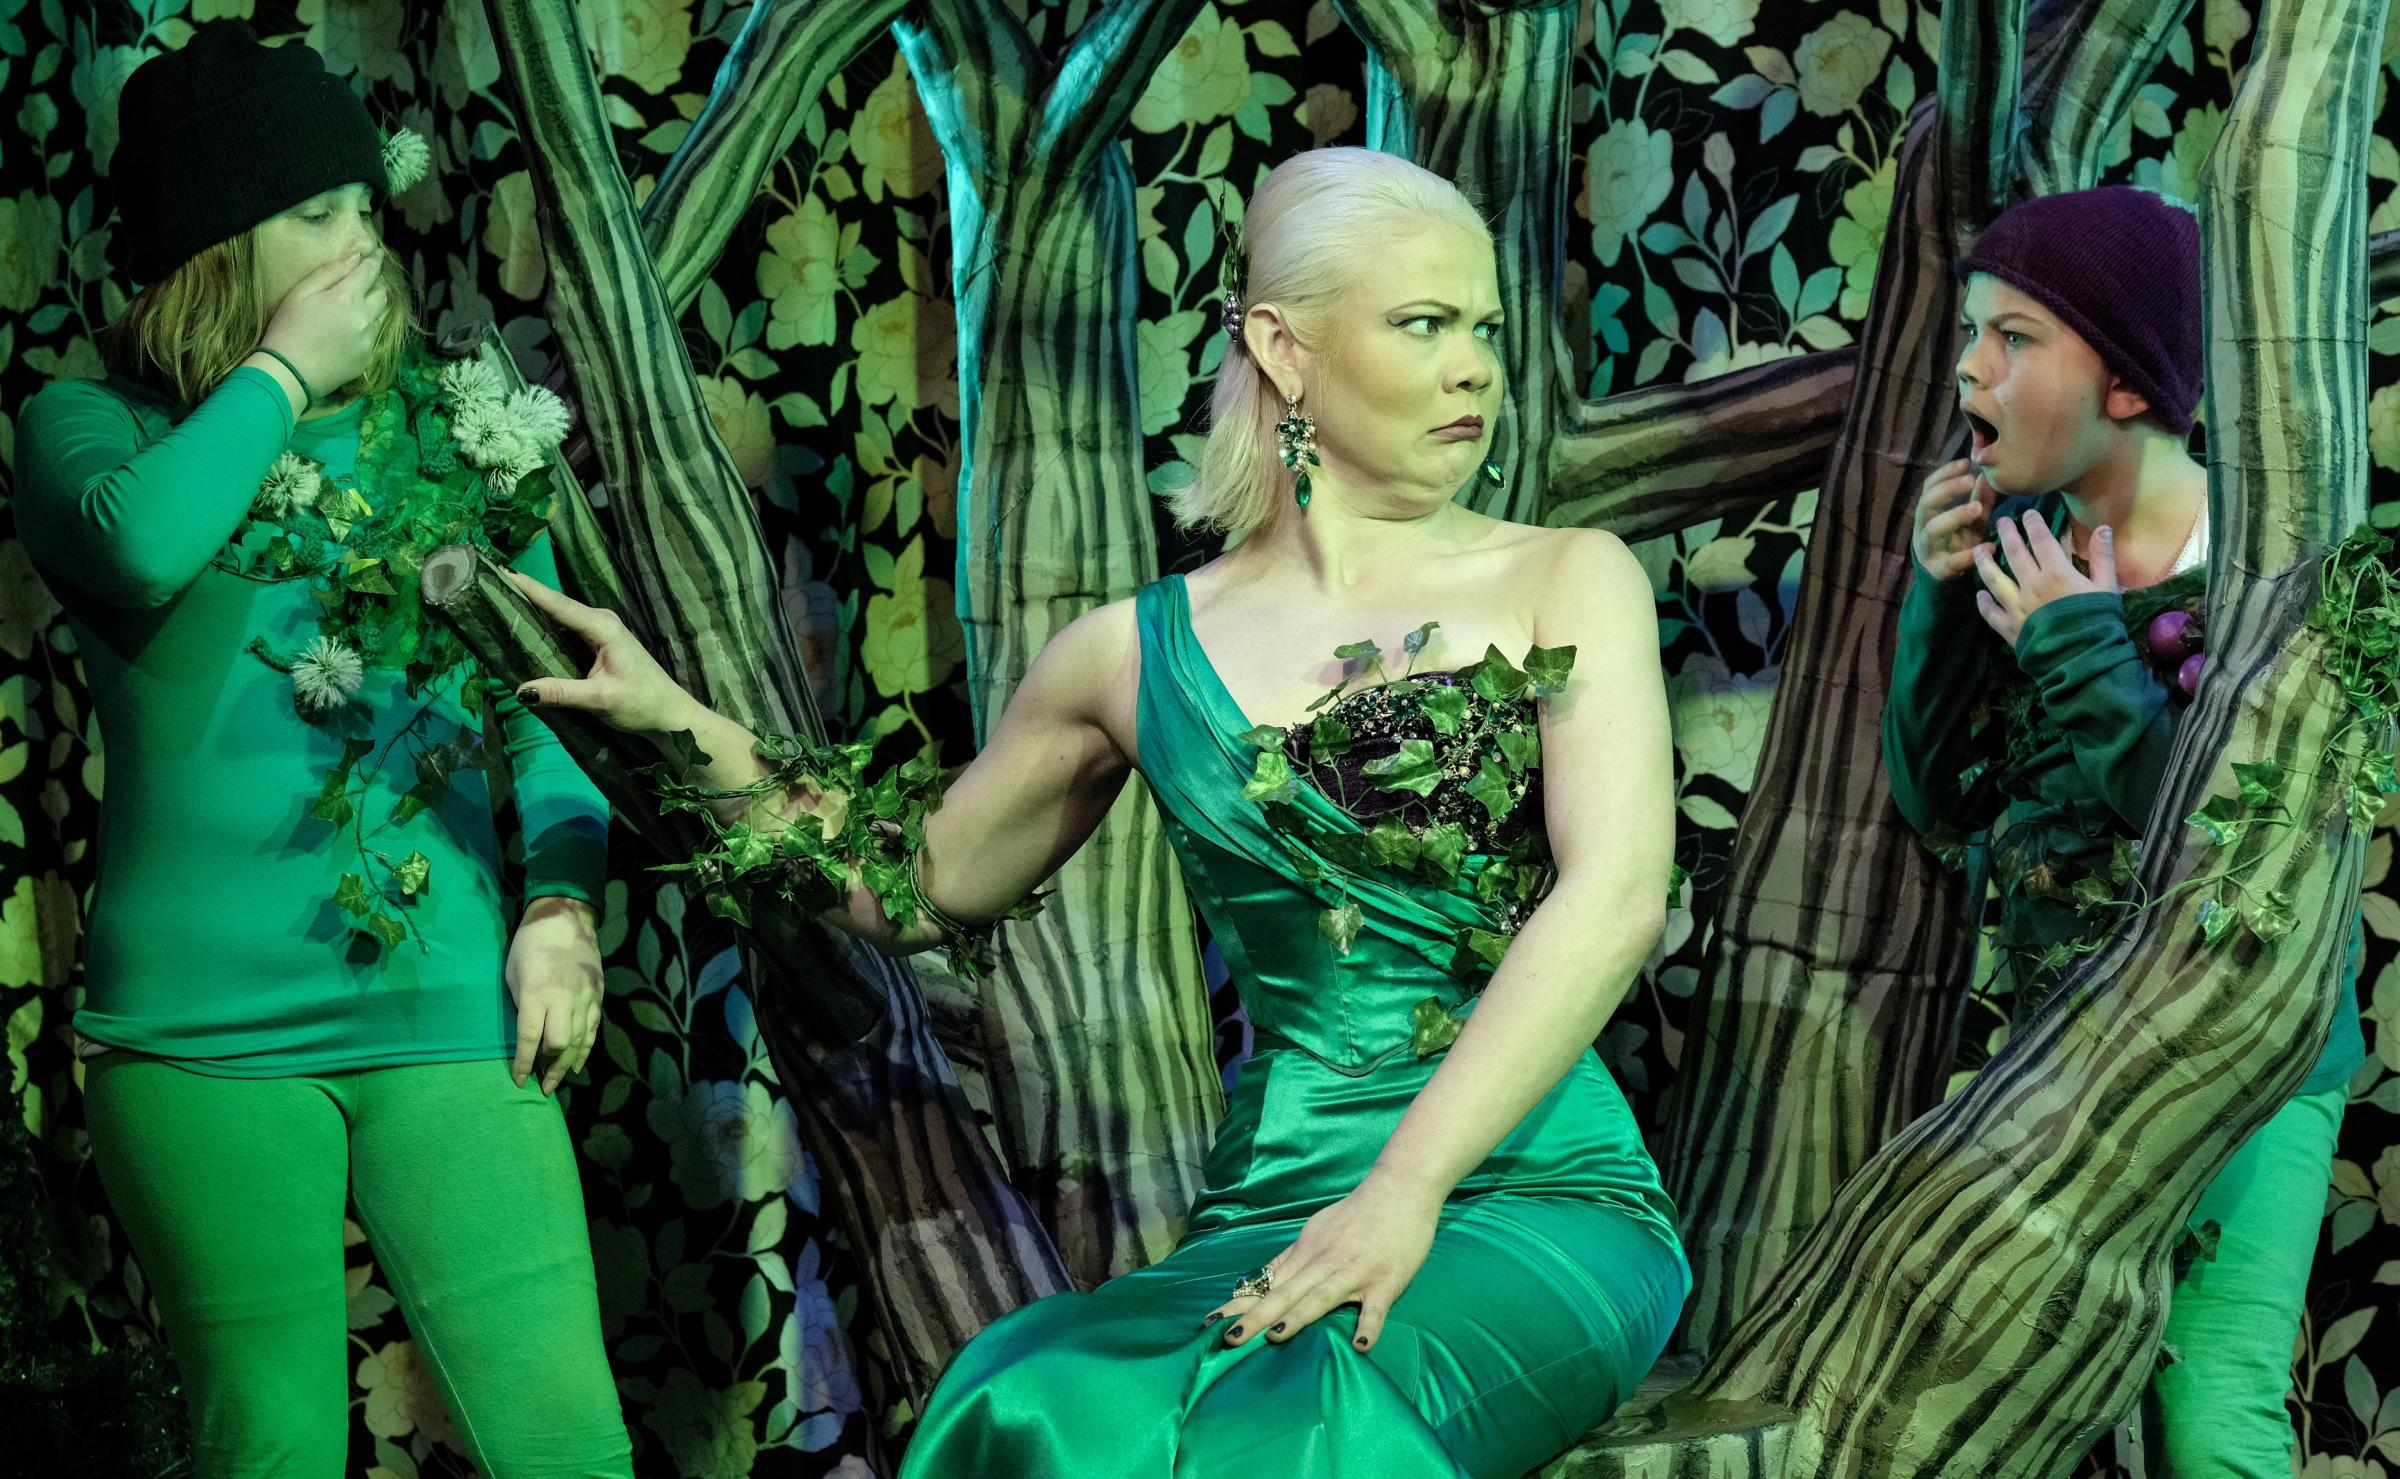 Erica Guyatt rather stole the show as the deliciously evil yet seductive baddie Belladonna Bindweed.